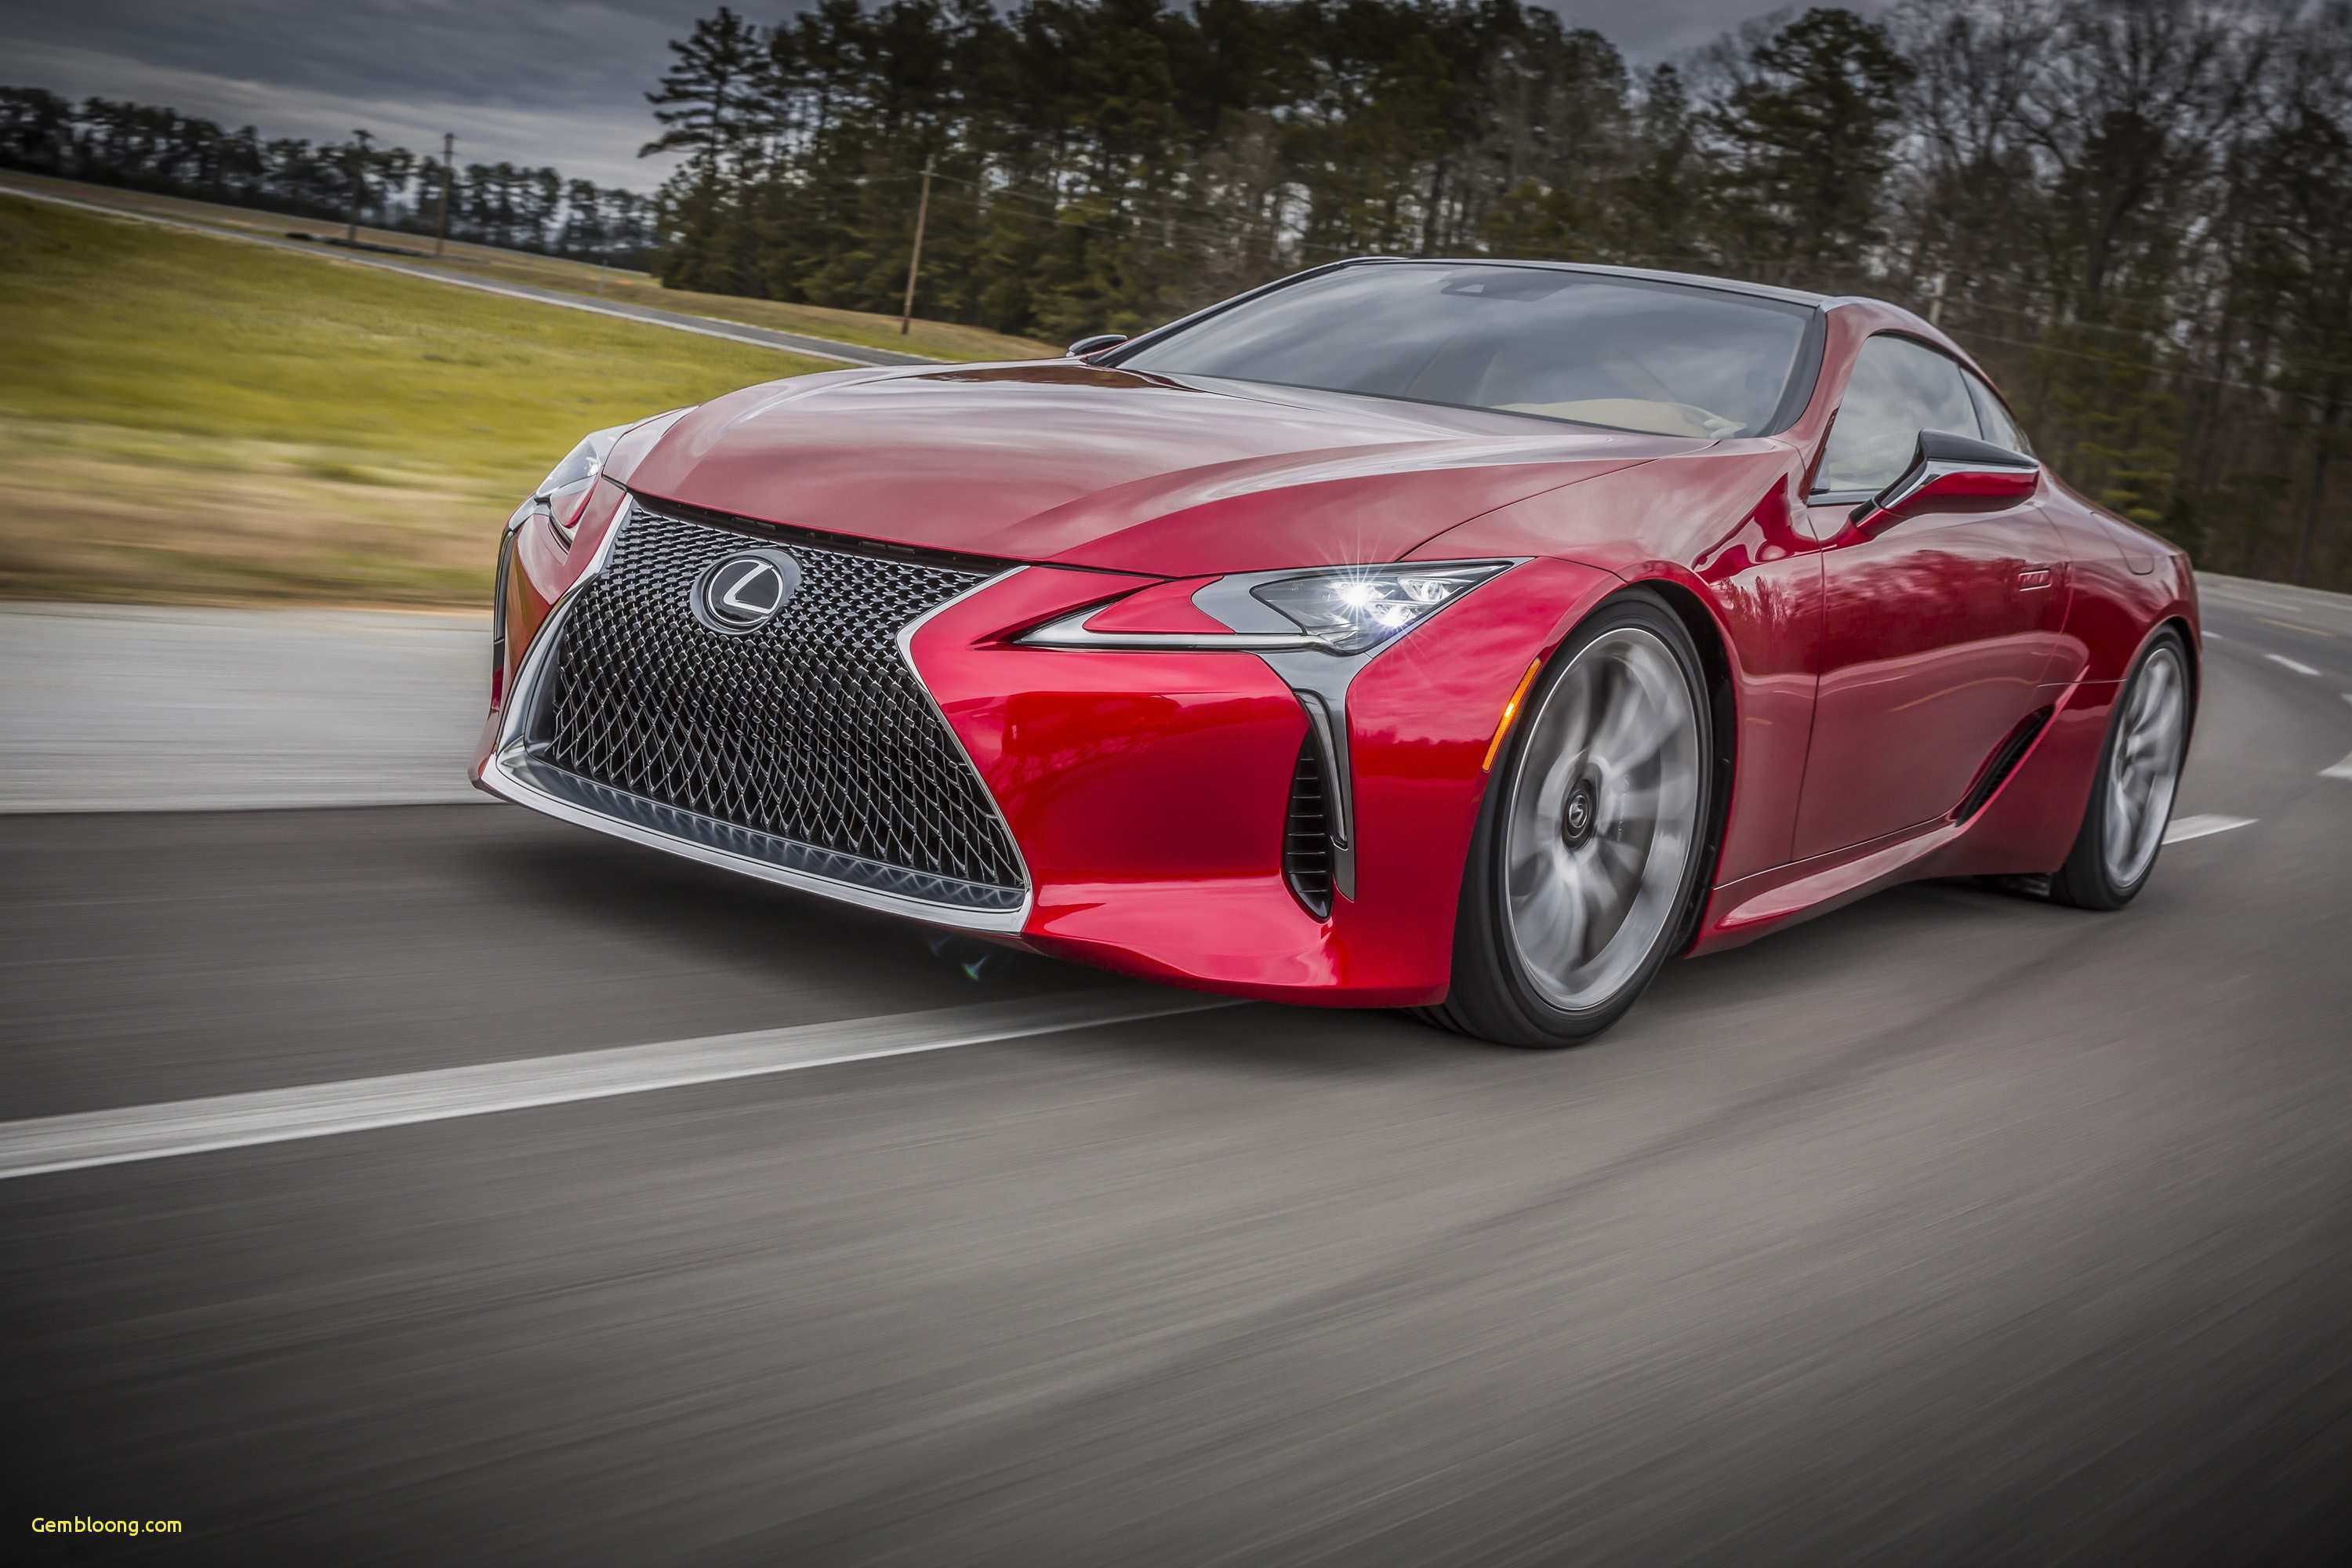 76 All New 2020 Lexus LF LC Concept by 2020 Lexus LF LC